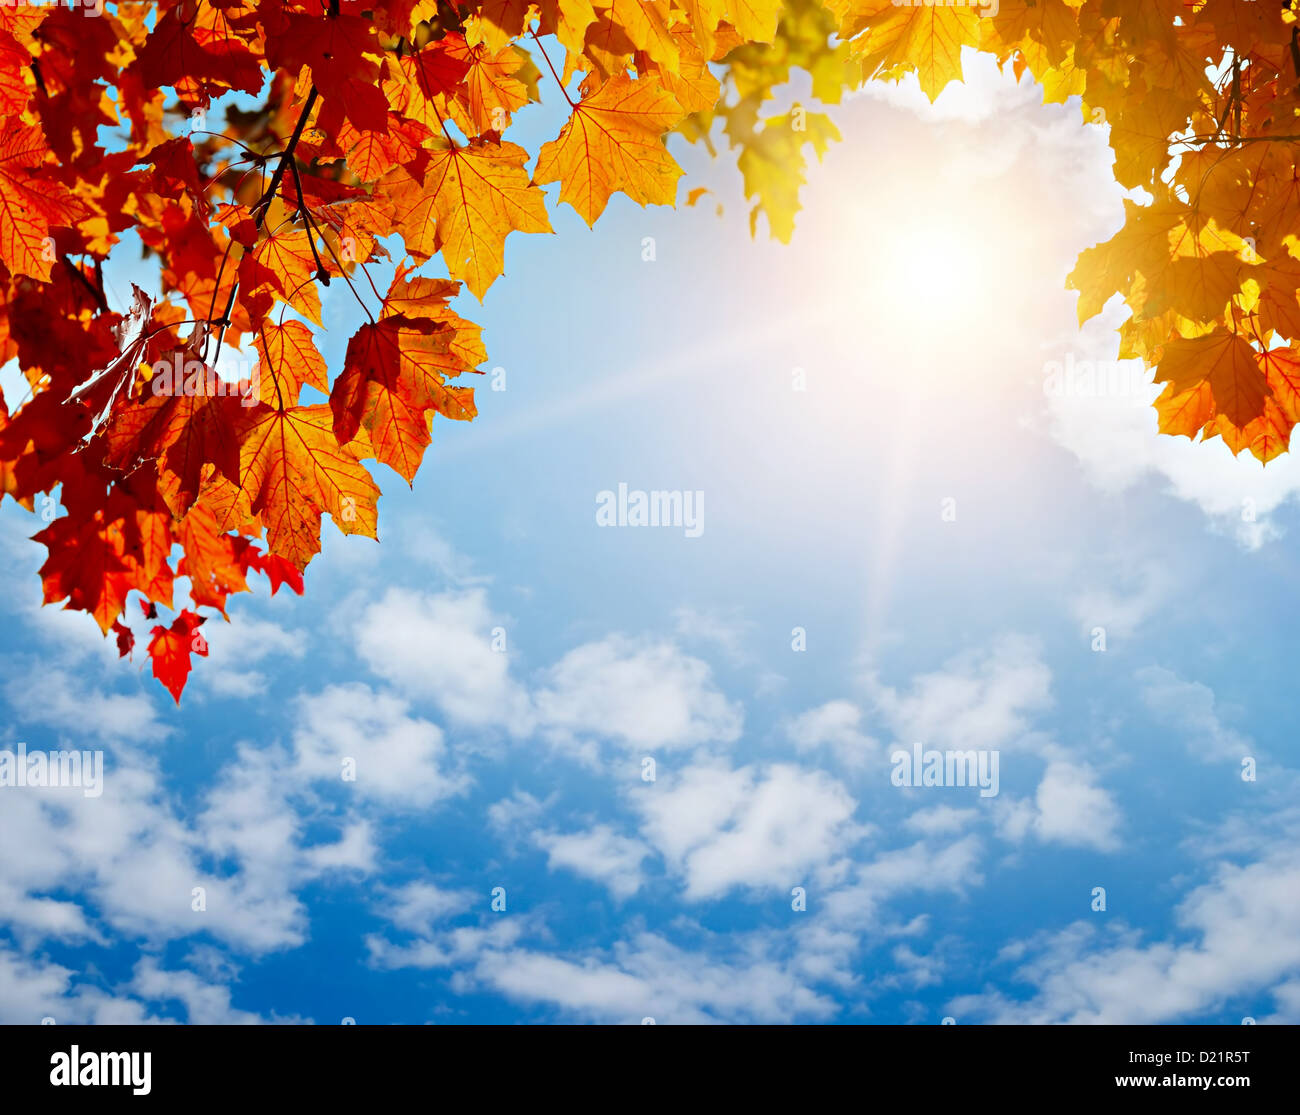 autumn yellow leaves in sun rays and blue sky - Stock Image